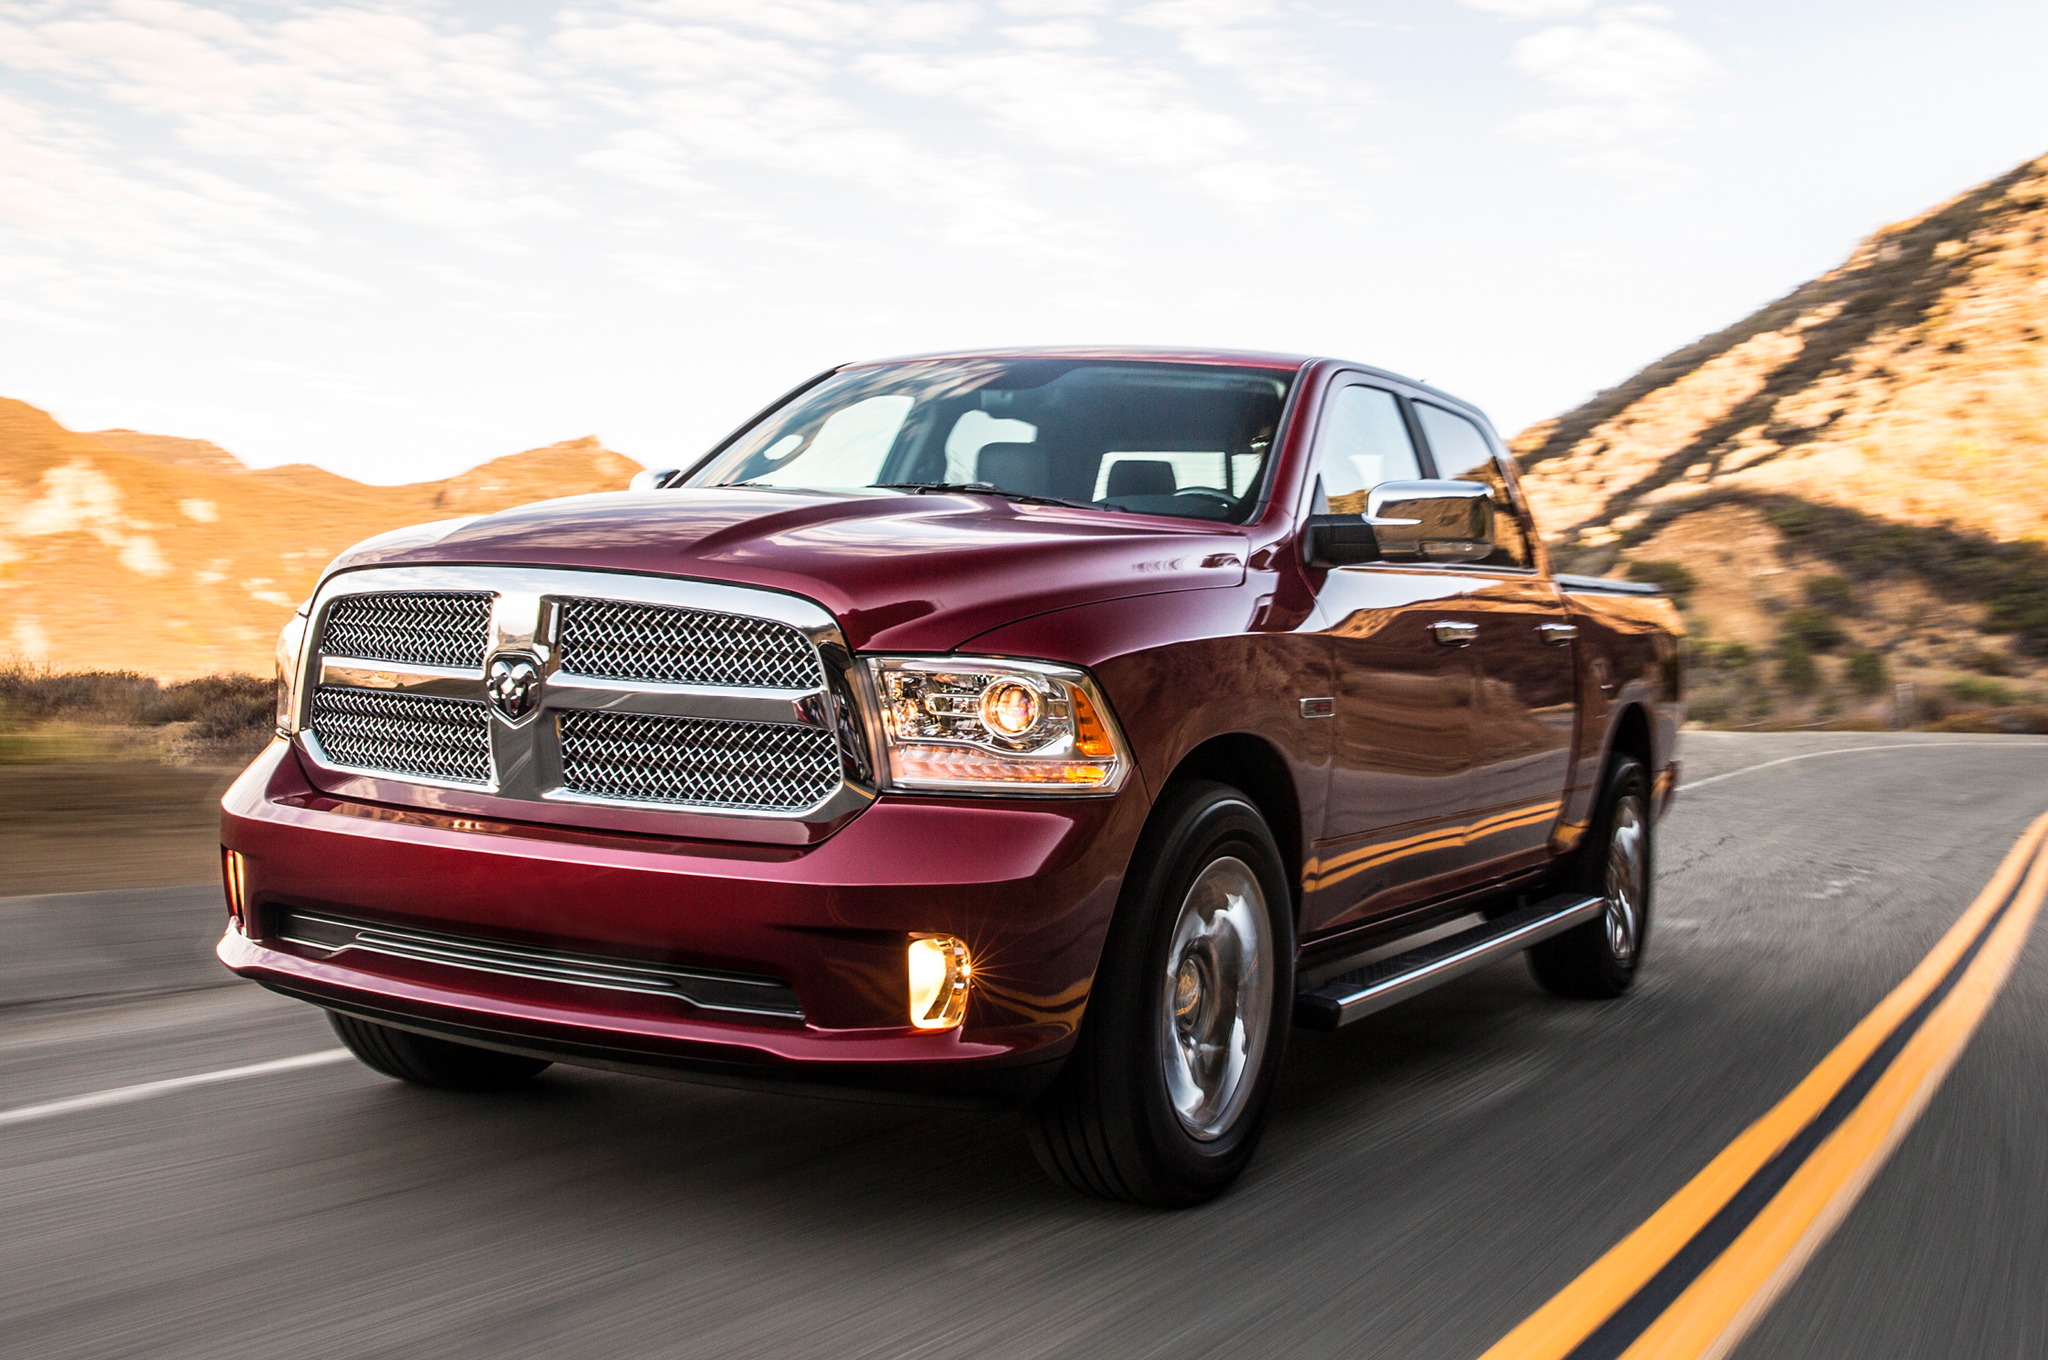 best ram love for why reasons truck interior perfect tradesman fishermen fishing outdoorsman is aventura the dodge